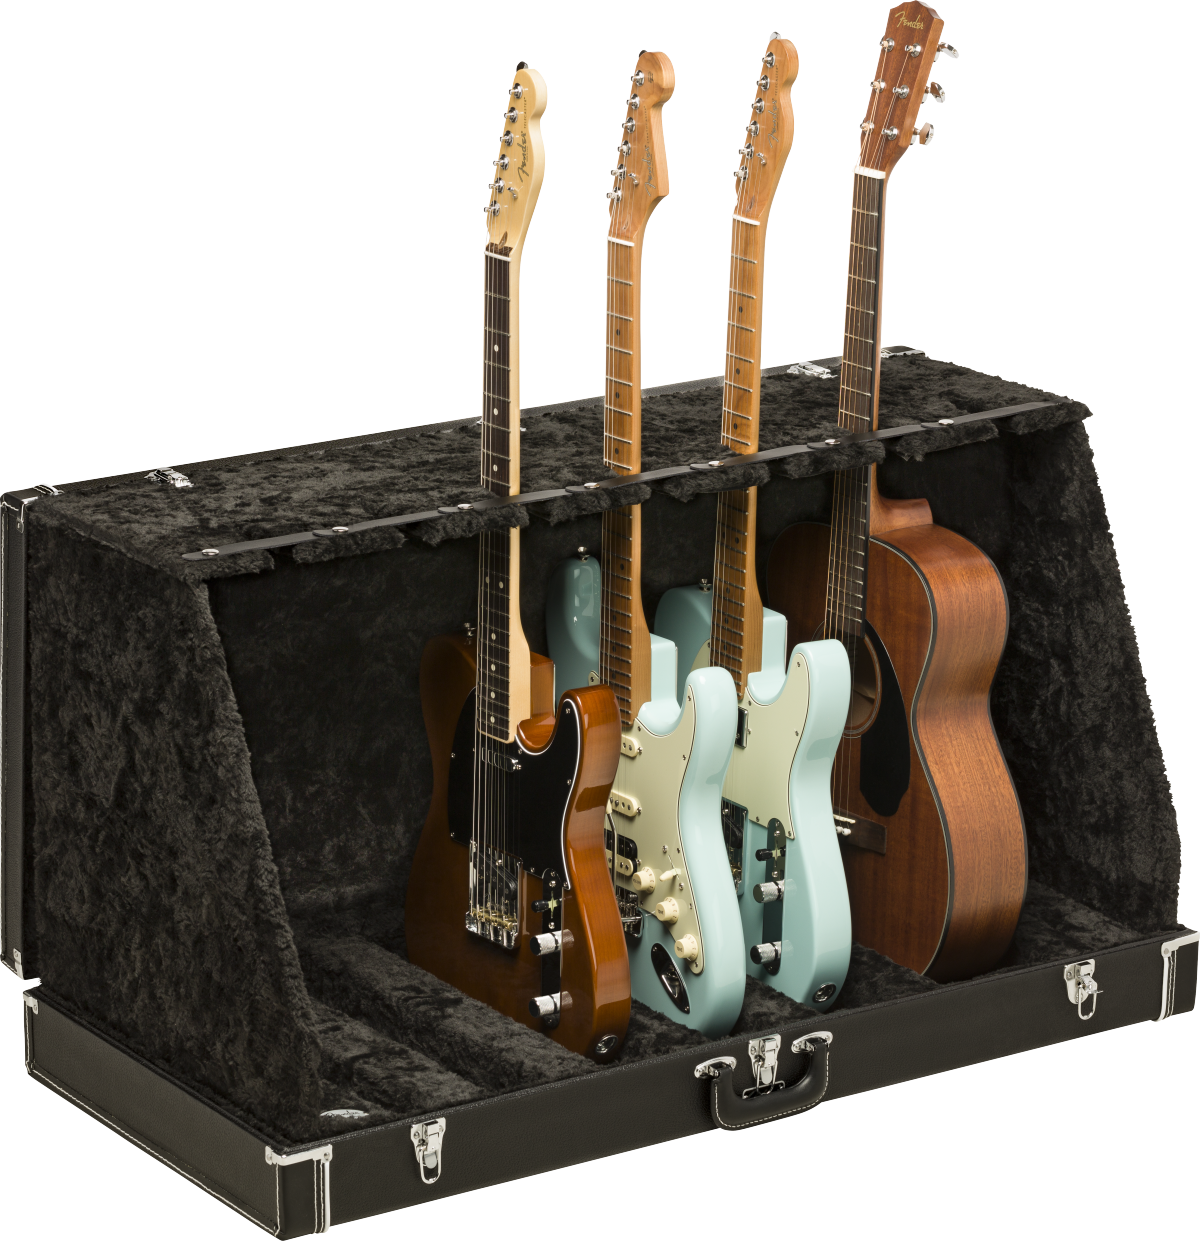 Fender Classic Series Case Stand - 7 Guitar